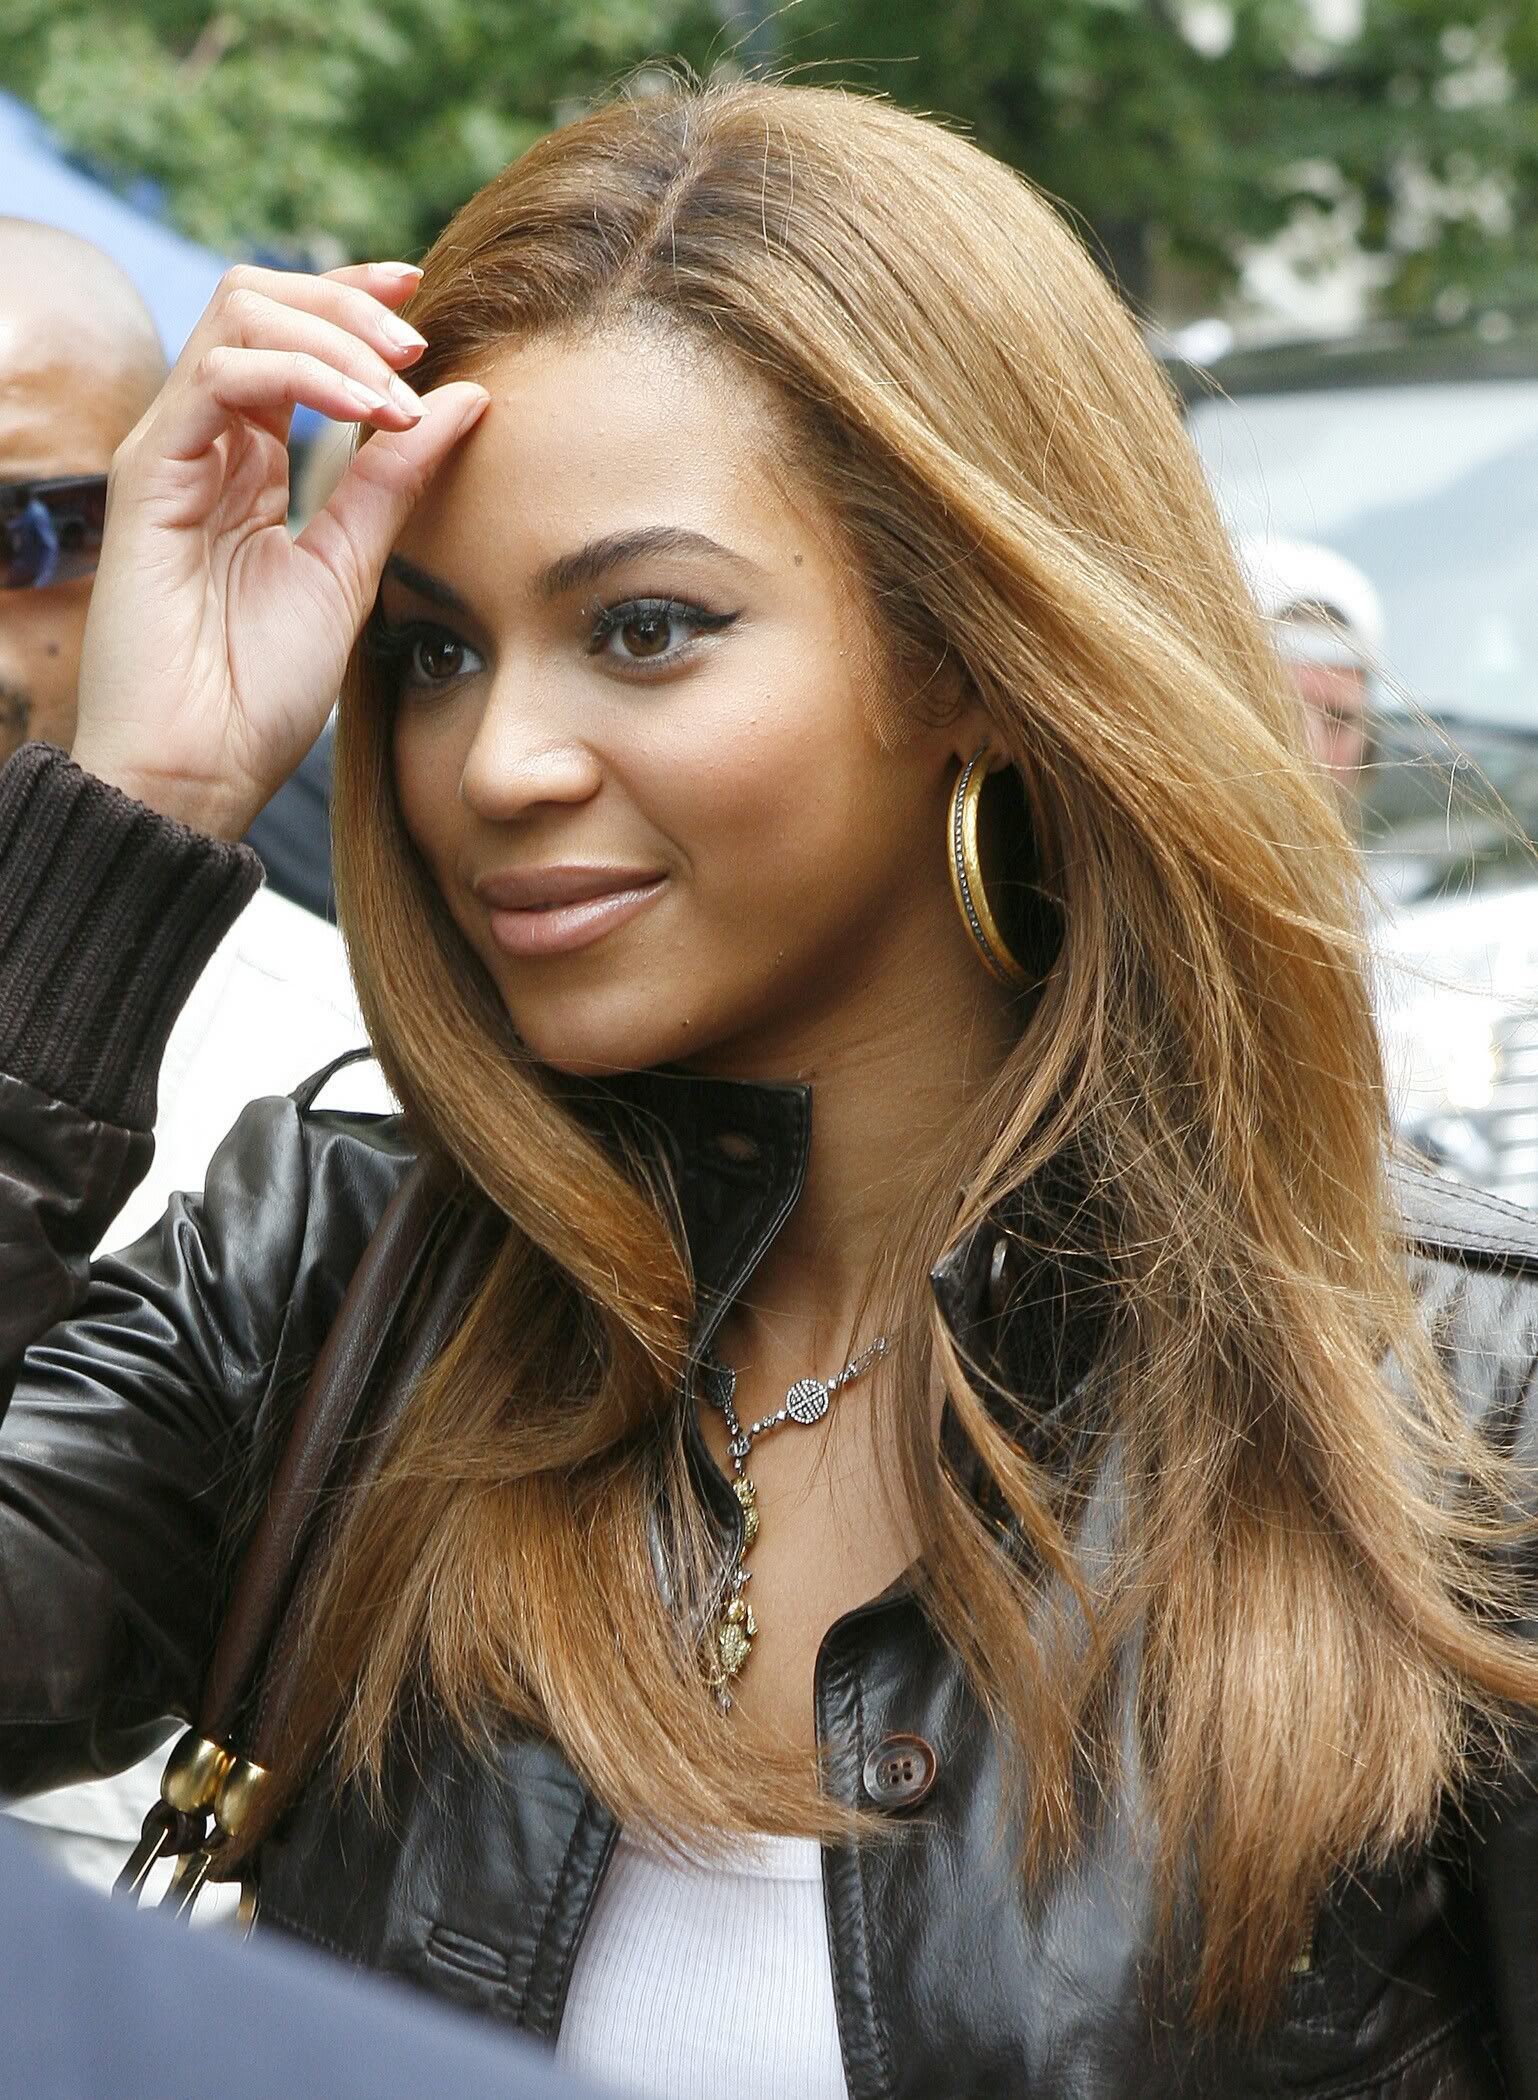 Pin By Yenny Lopez On Yenny Pinterest Hair Beyonce Hair Color